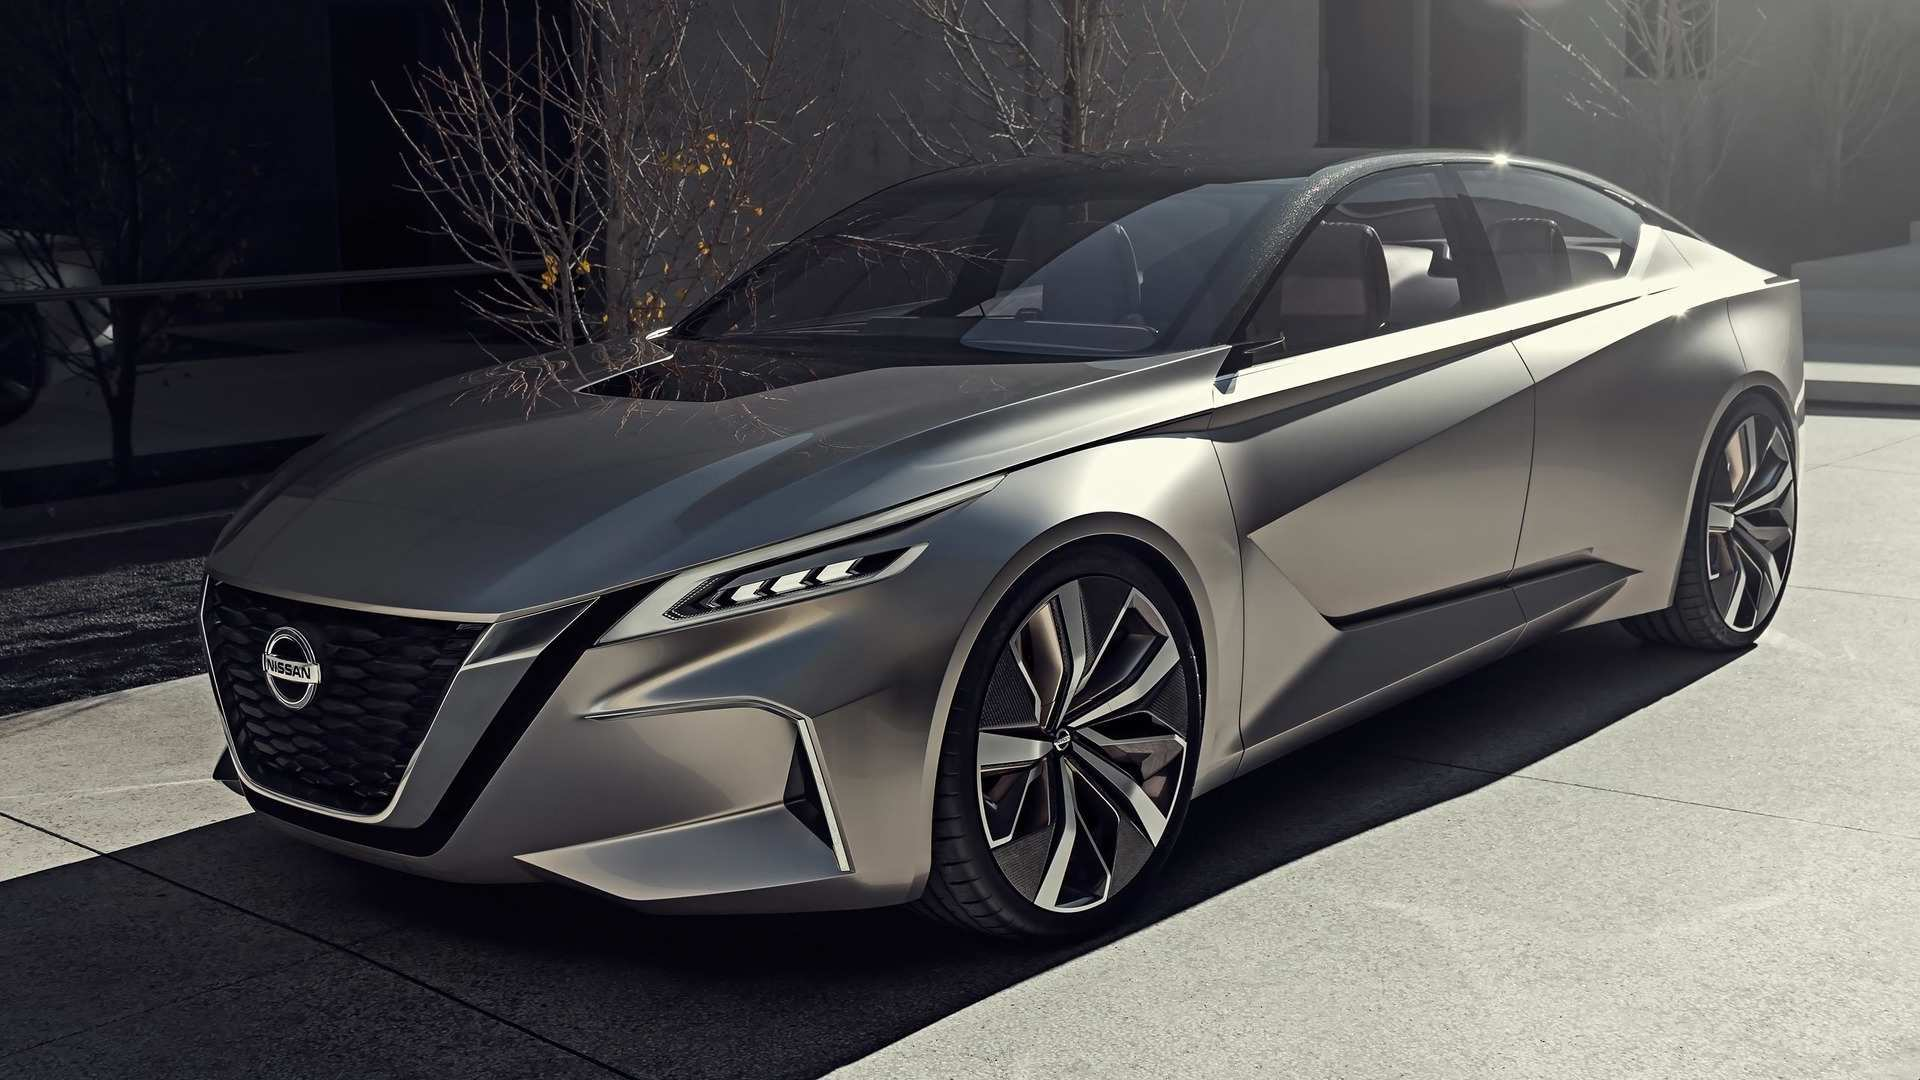 67 Great Nissan Maxima 2020 Release Date Pictures with Nissan Maxima 2020 Release Date